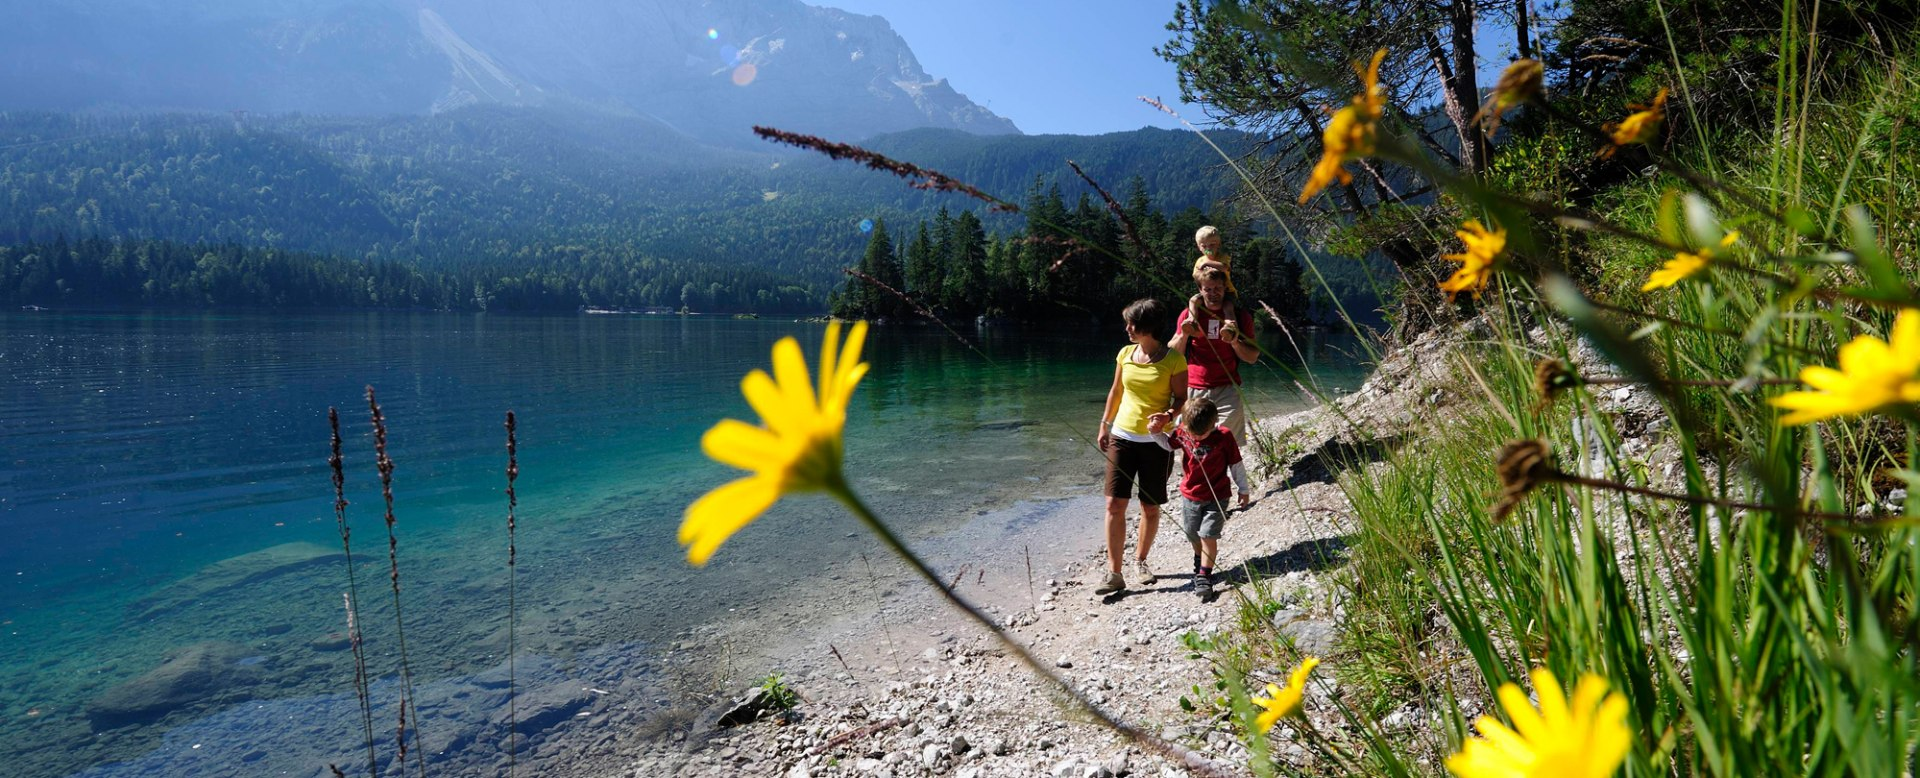 Walk with family around lake eibsee, © Touristinformation Grainau - Foto Ehn